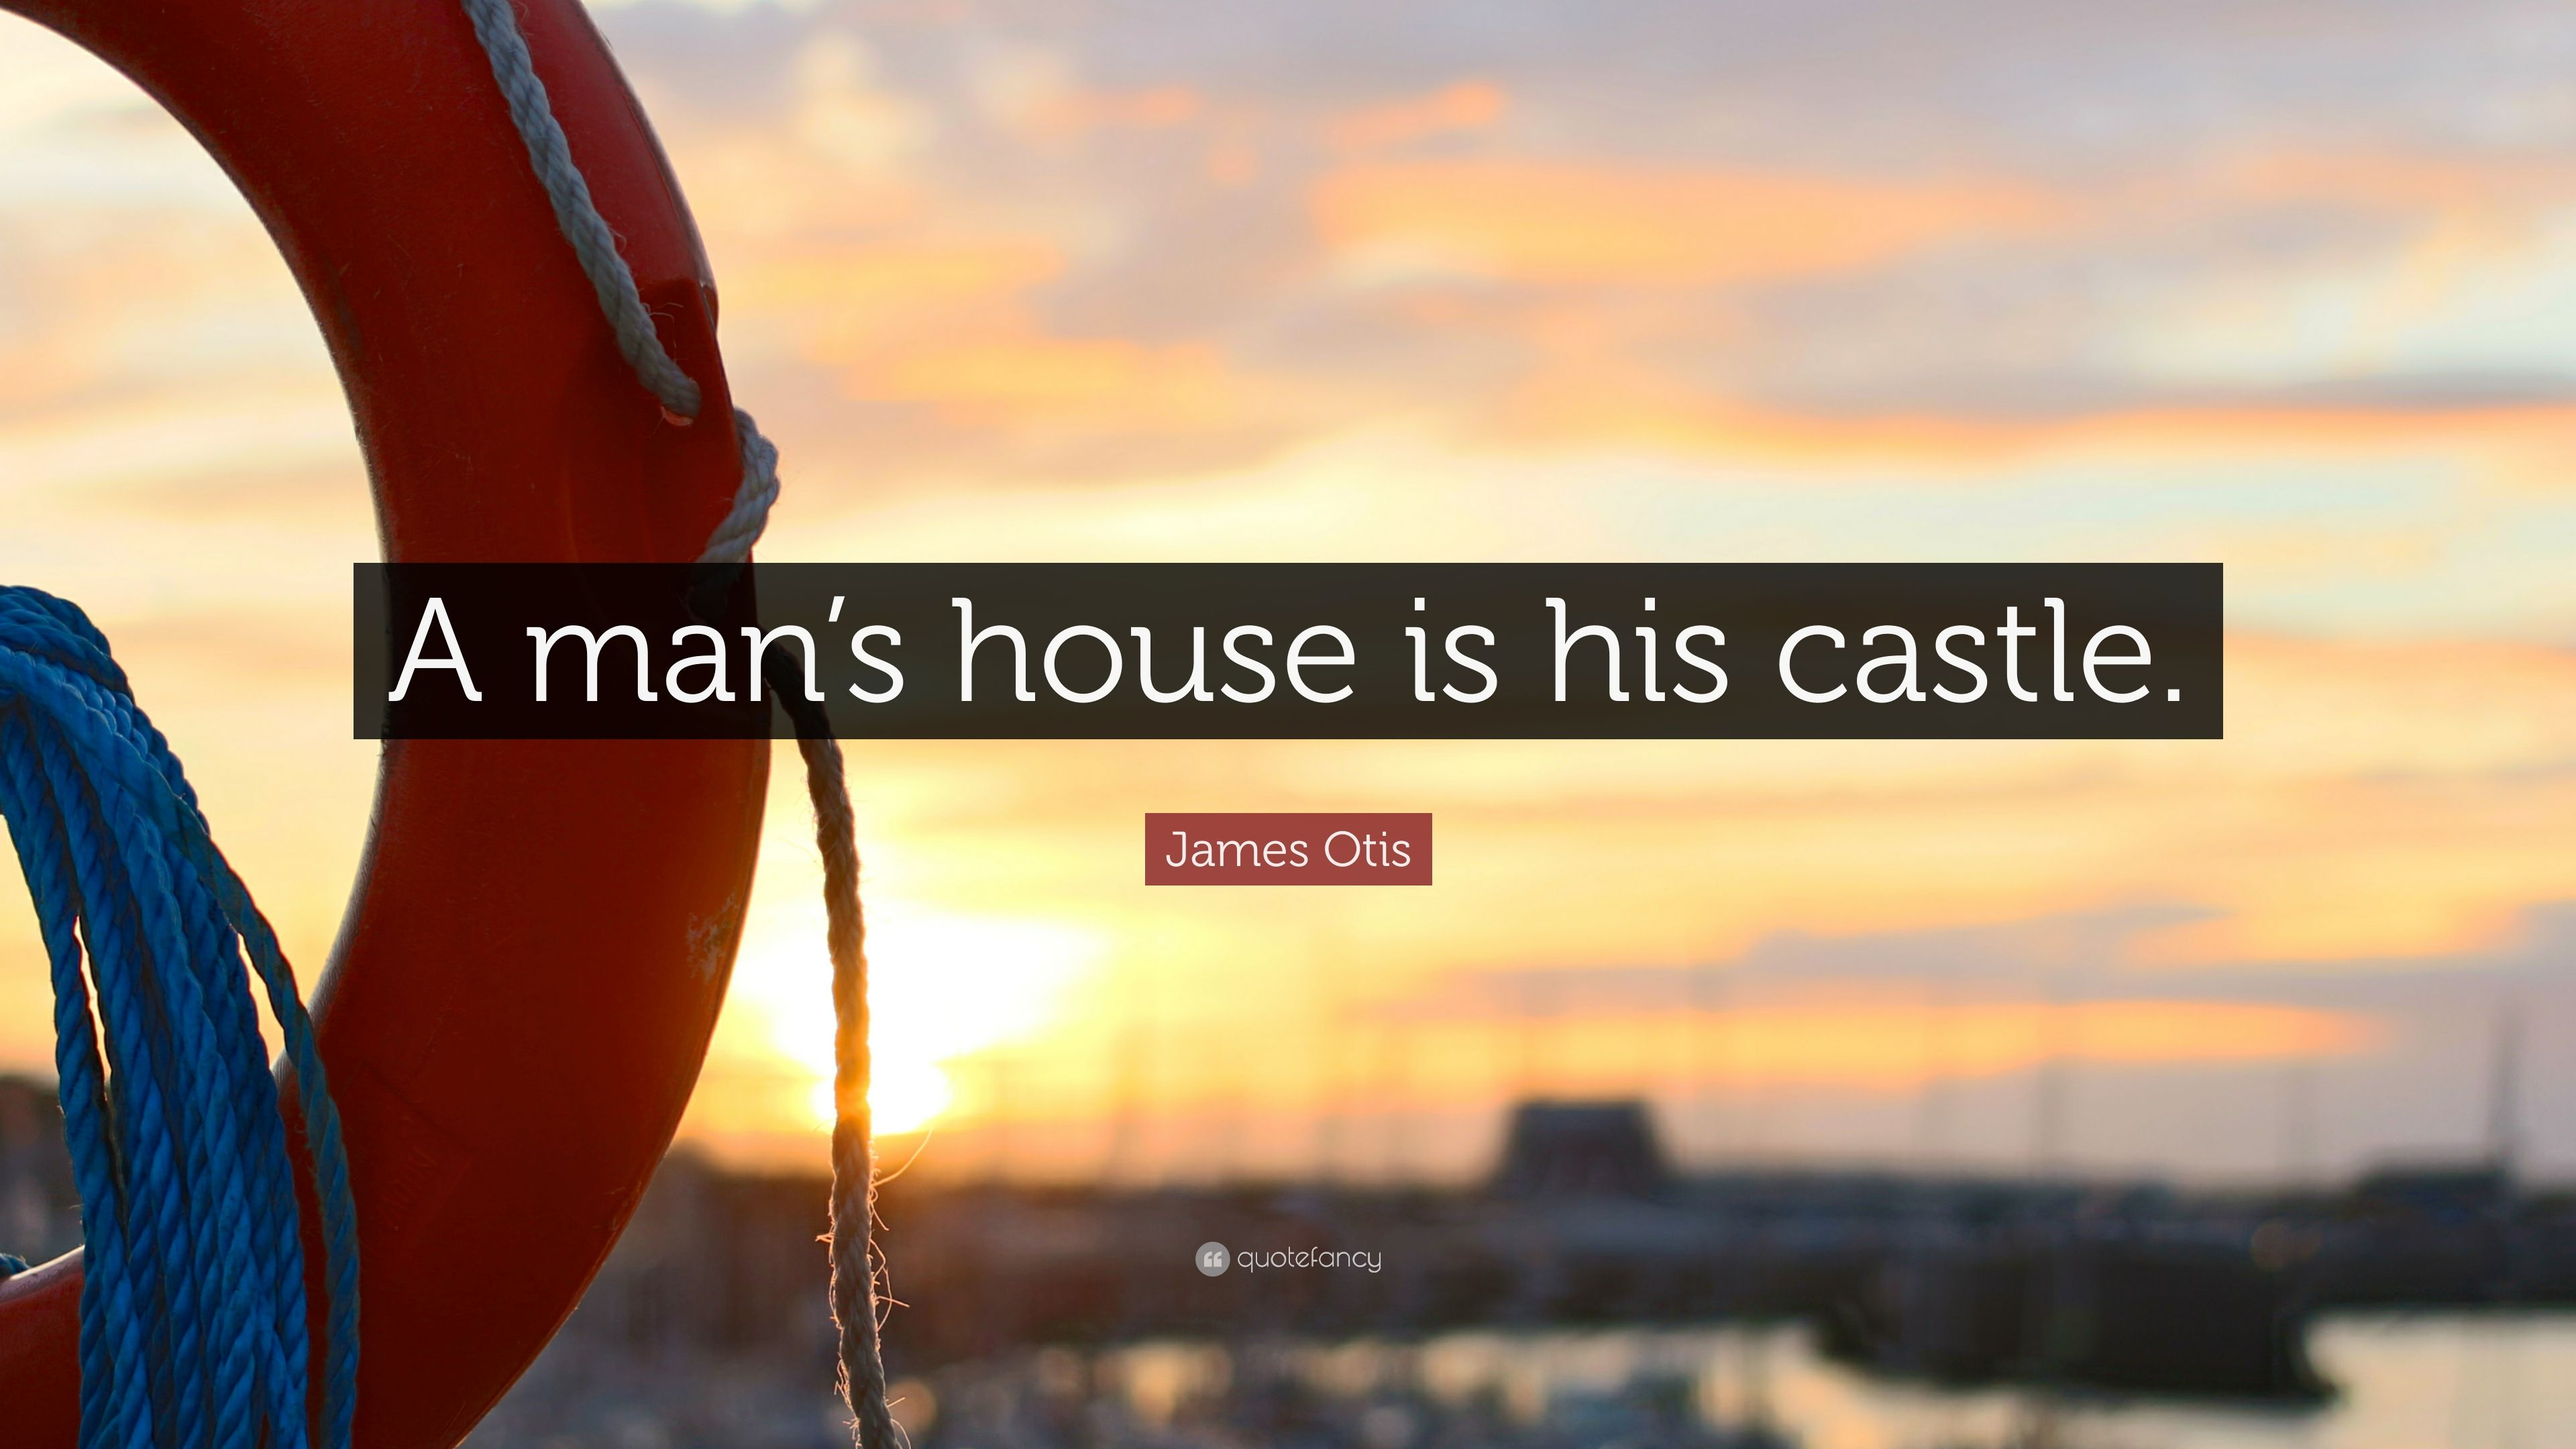 James Otis's quotes, famous and not much - Sualci Quotes |James Otis Quotes